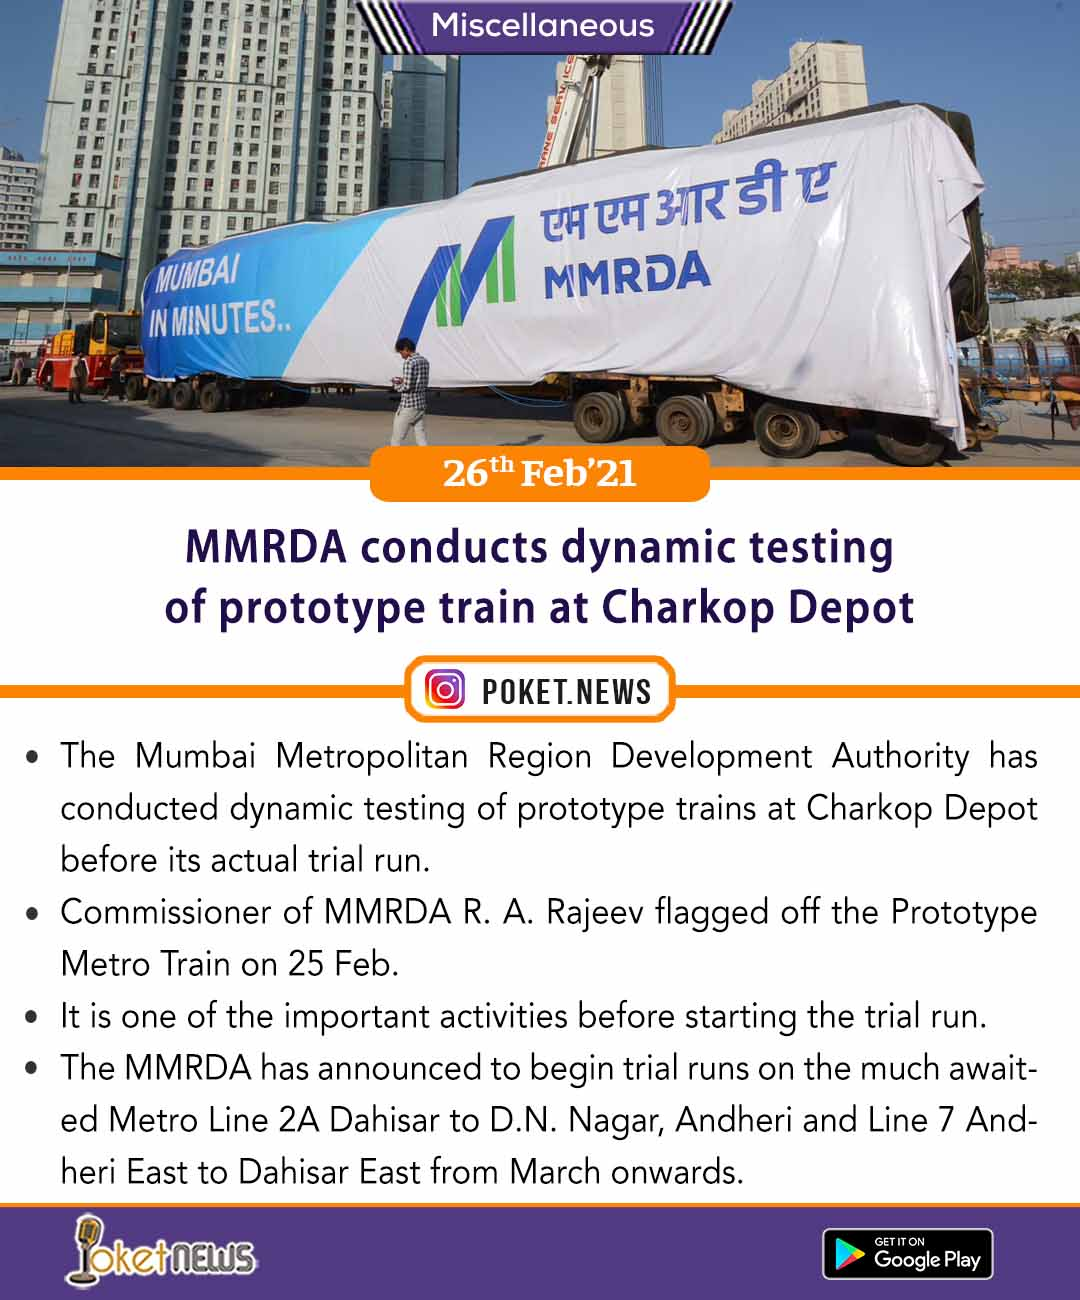 MMRDA conducts dynamic testing of prototype train at Charkop Depot